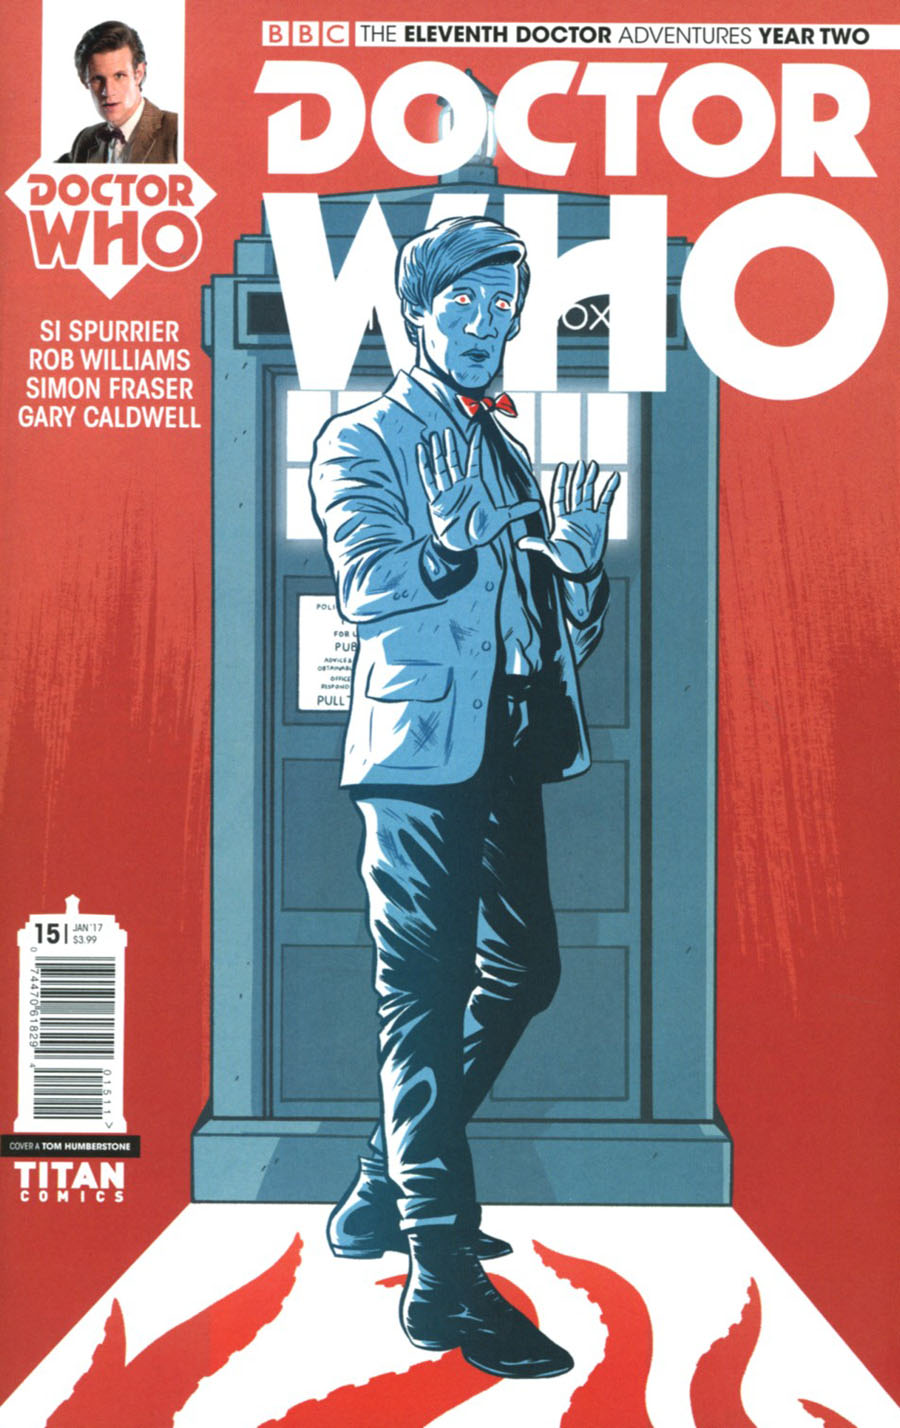 Doctor Who 11th Doctor Year Two #15 Cover A Regular Tom Humberstone Cover